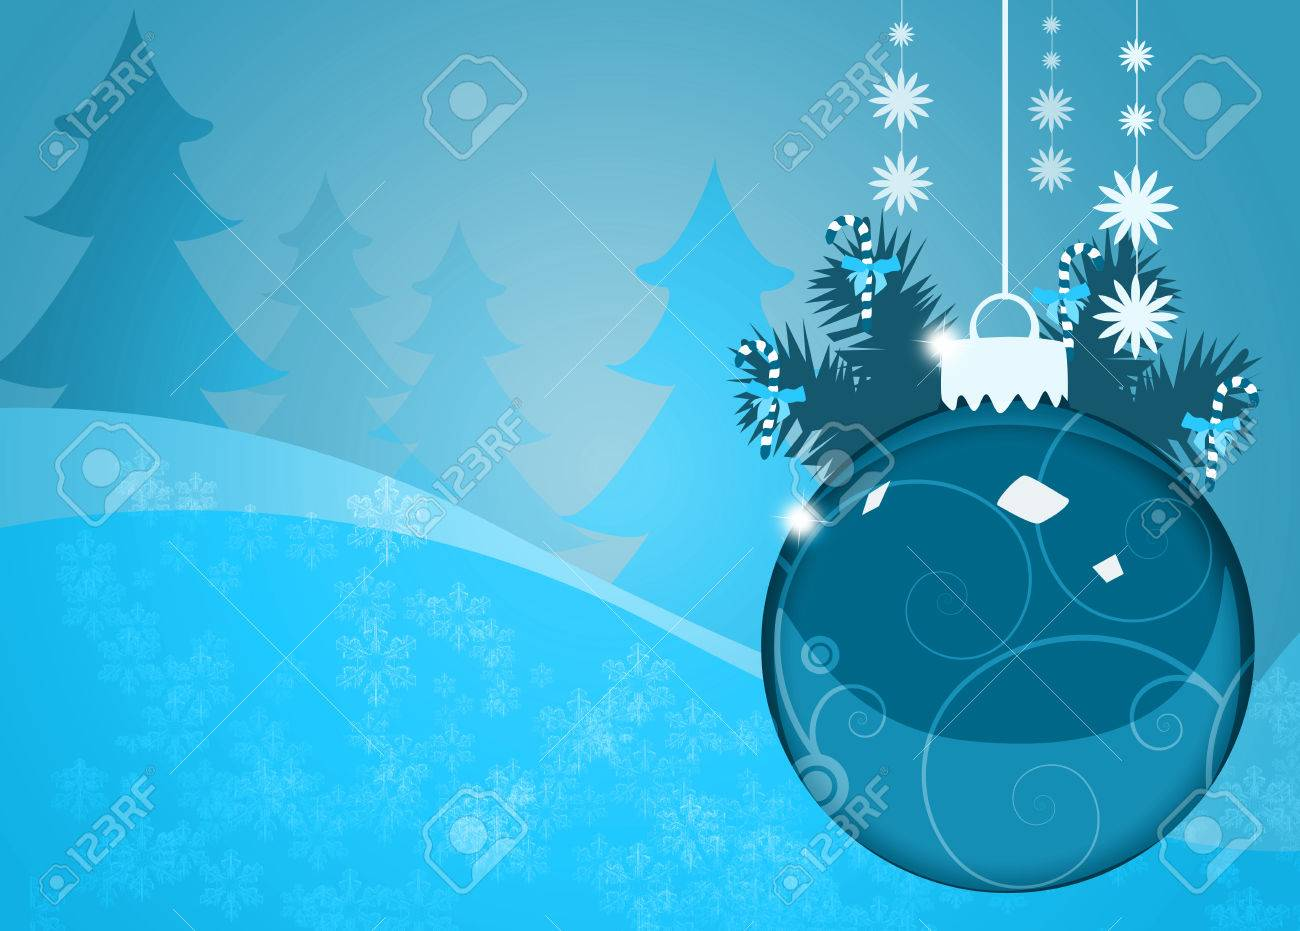 merry christmas decoration poster or flyer background space merry christmas decoration poster or flyer background space stock photo 23419471